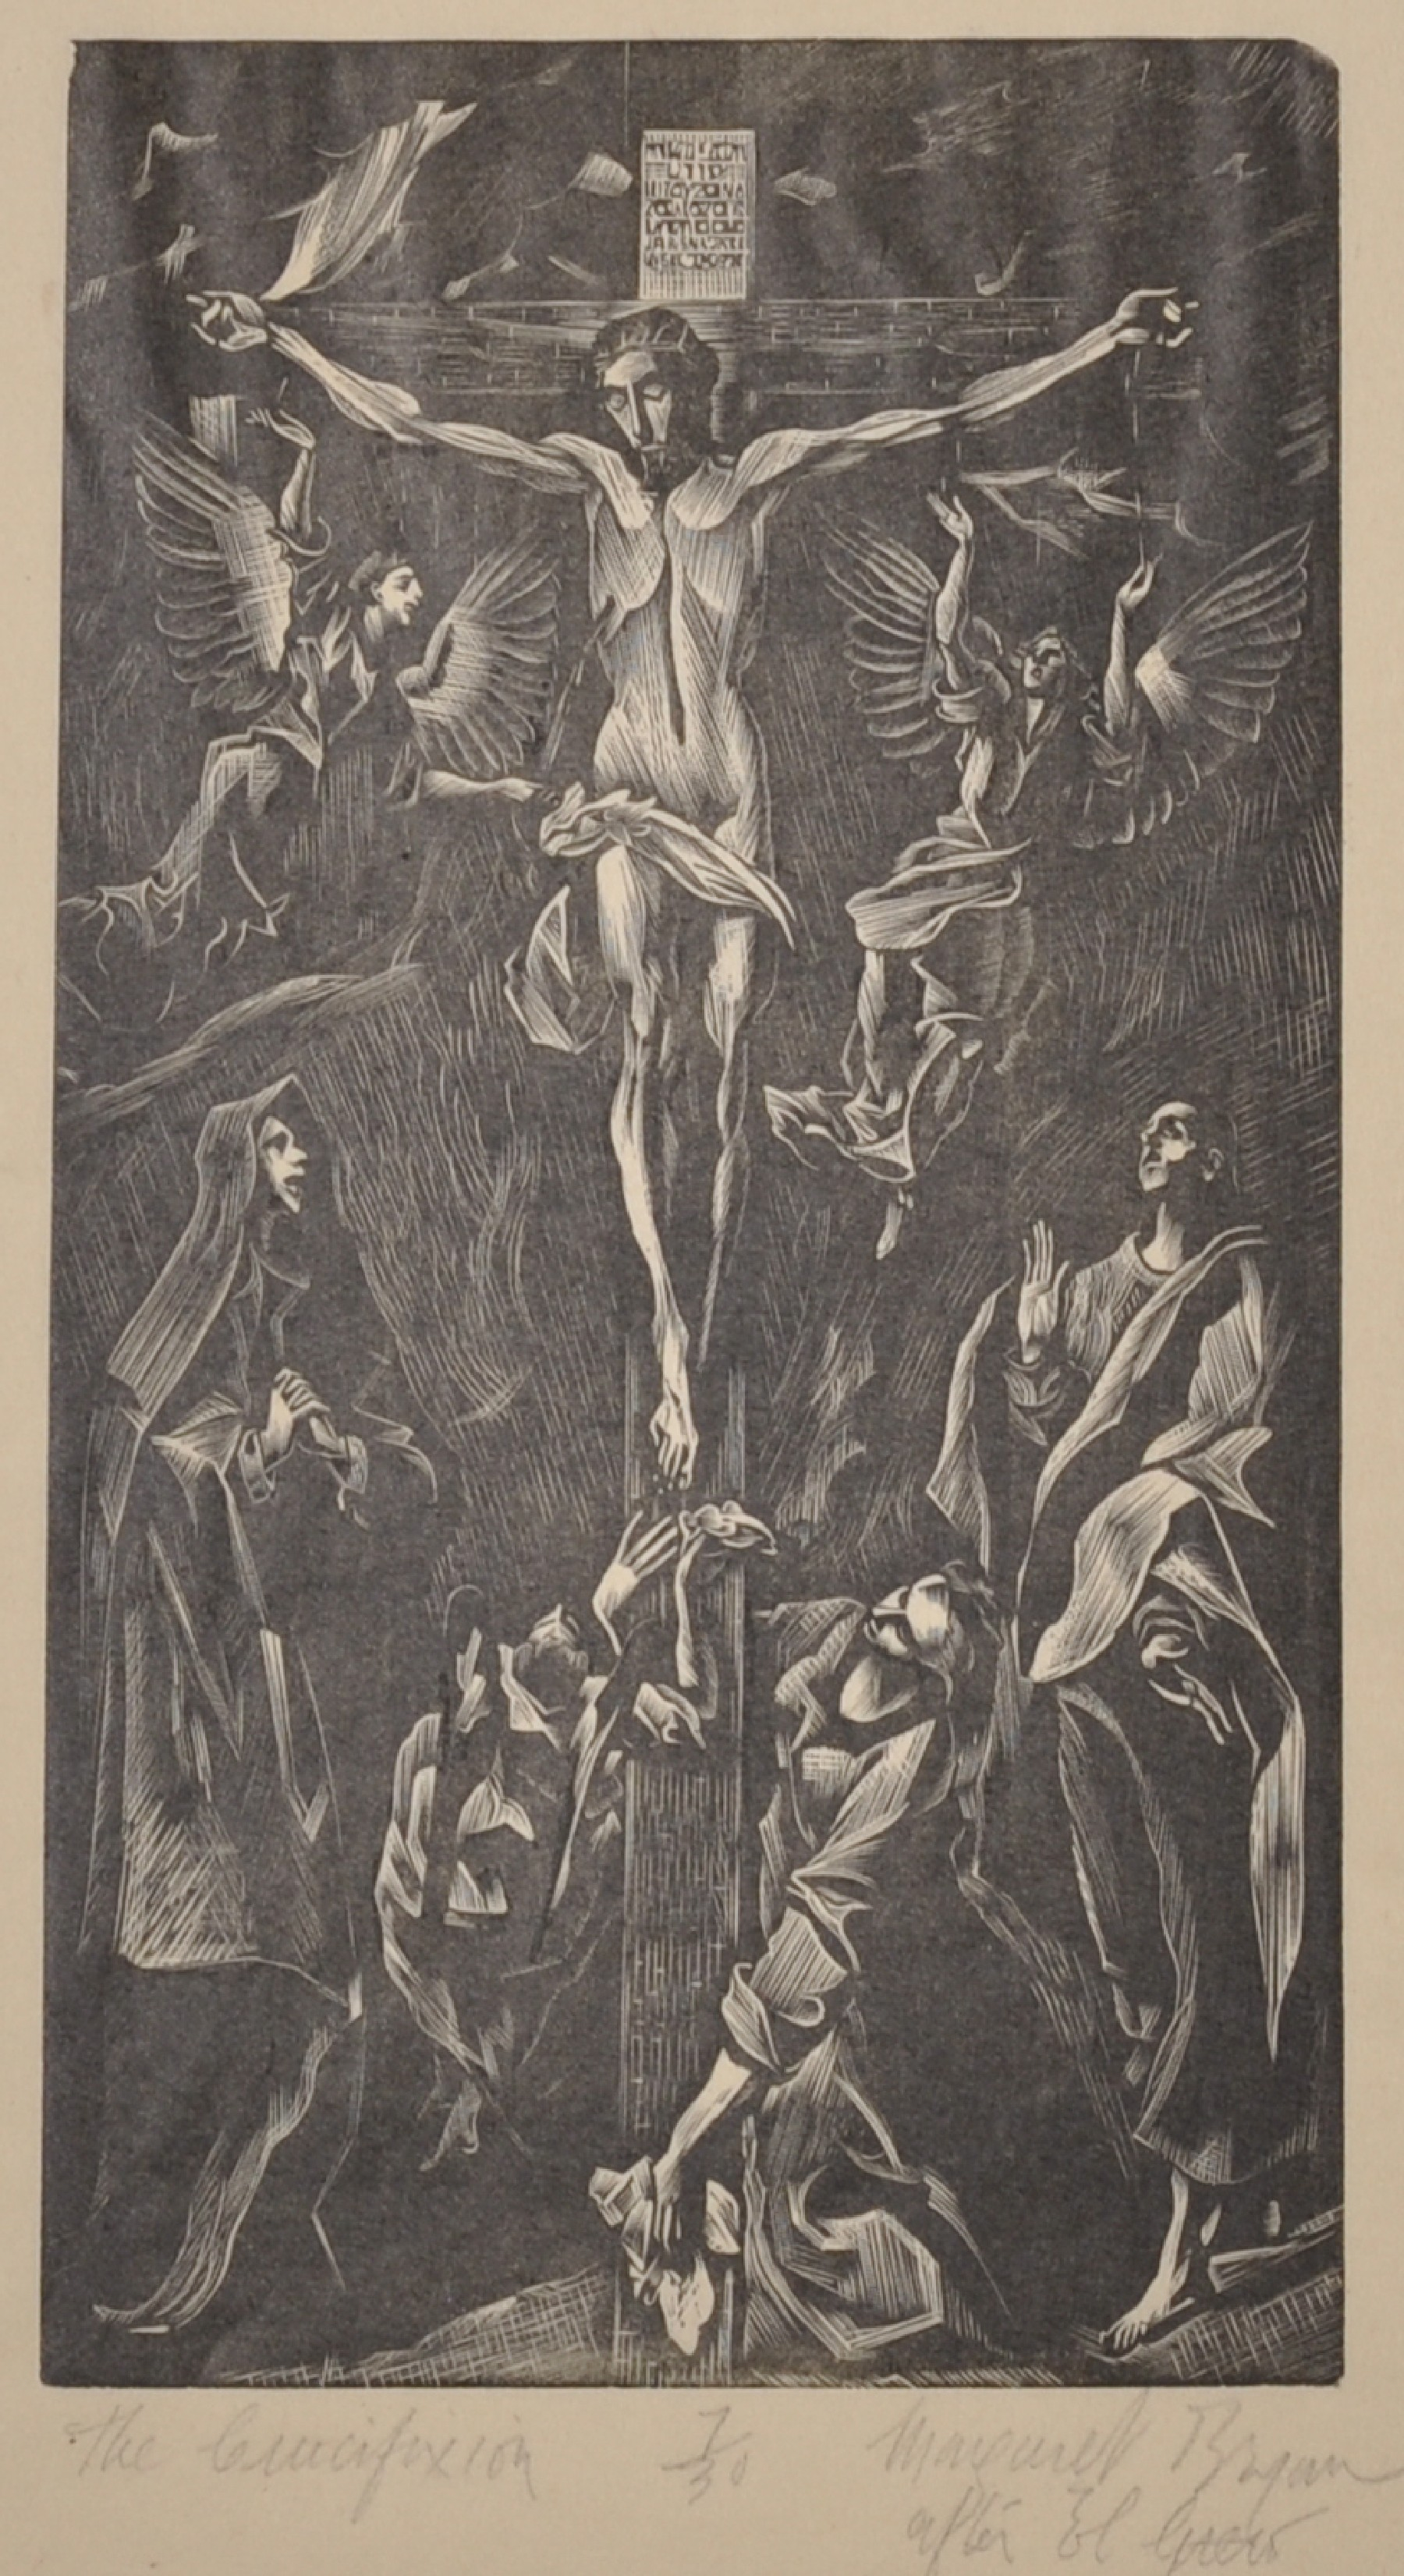 D. Margaret Bryan (19th - 20th Century) British. 'The Crucifixion', after El Greco, Woodcut, Signed,